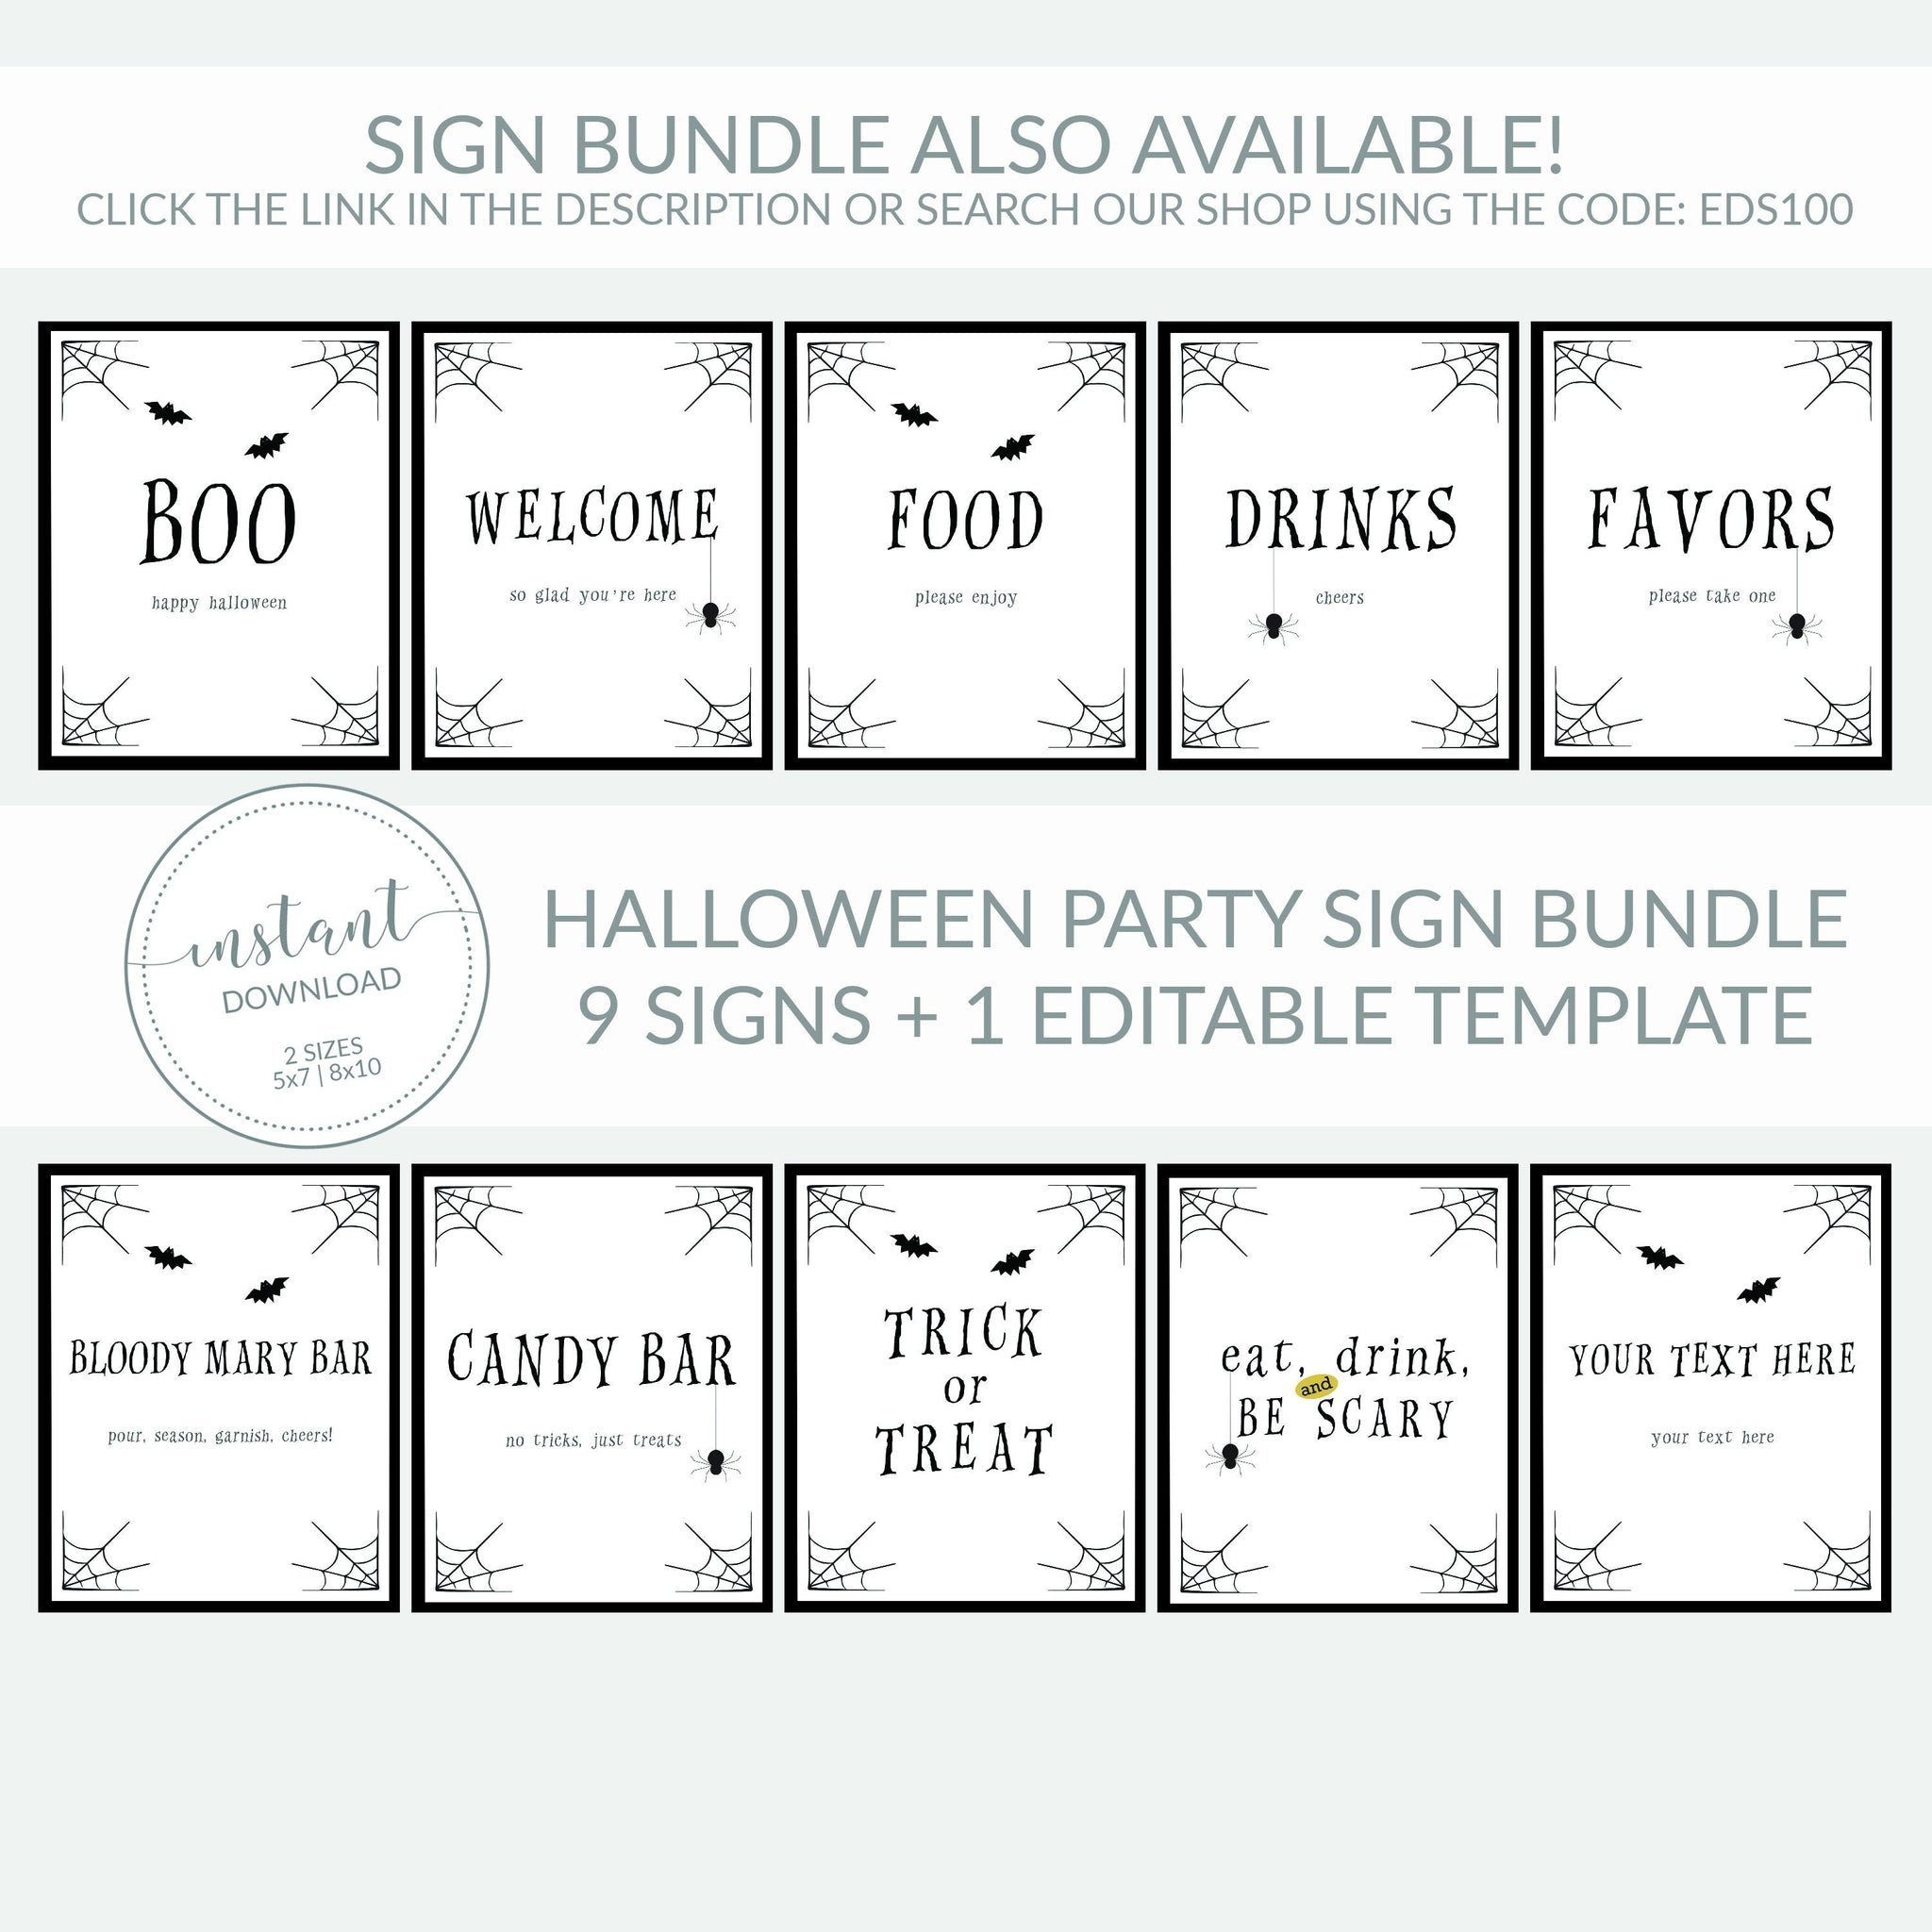 Halloween Decor Boo Sign, Halloween Decorations Printable Sign, Halloween Party Decor, Happy Halloween Door Sign, INSTANT DOWNLOAD - EDS100 - @PlumPolkaDot